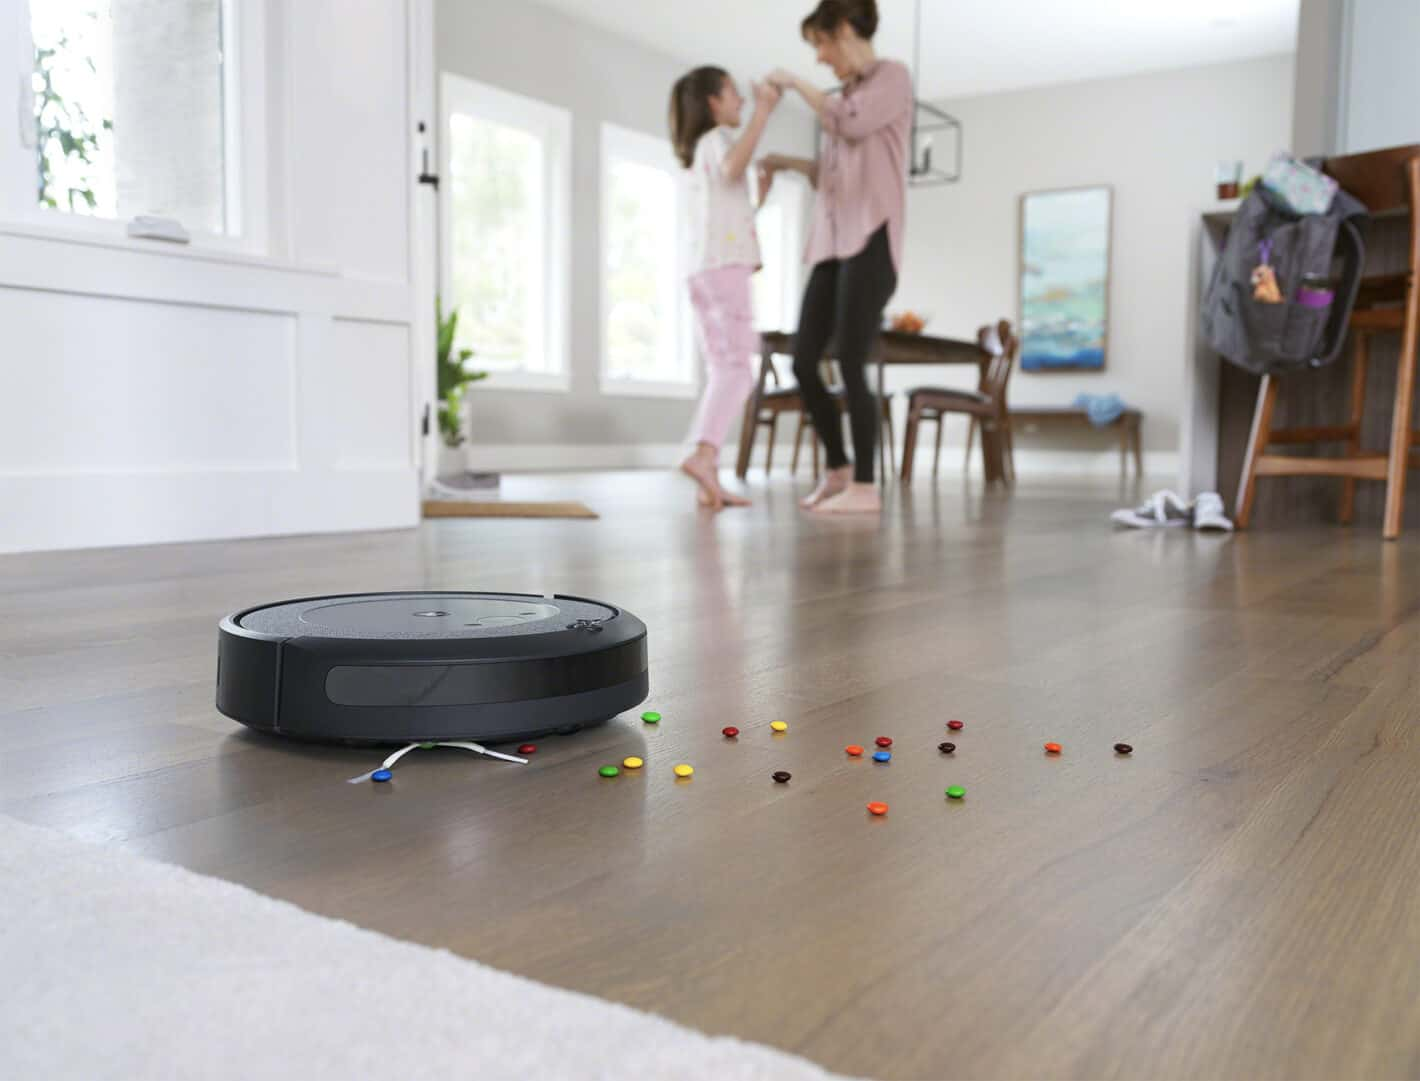 New Roomba i3 Plus Is The Cheapest Self-cleaning Vacuum Yet